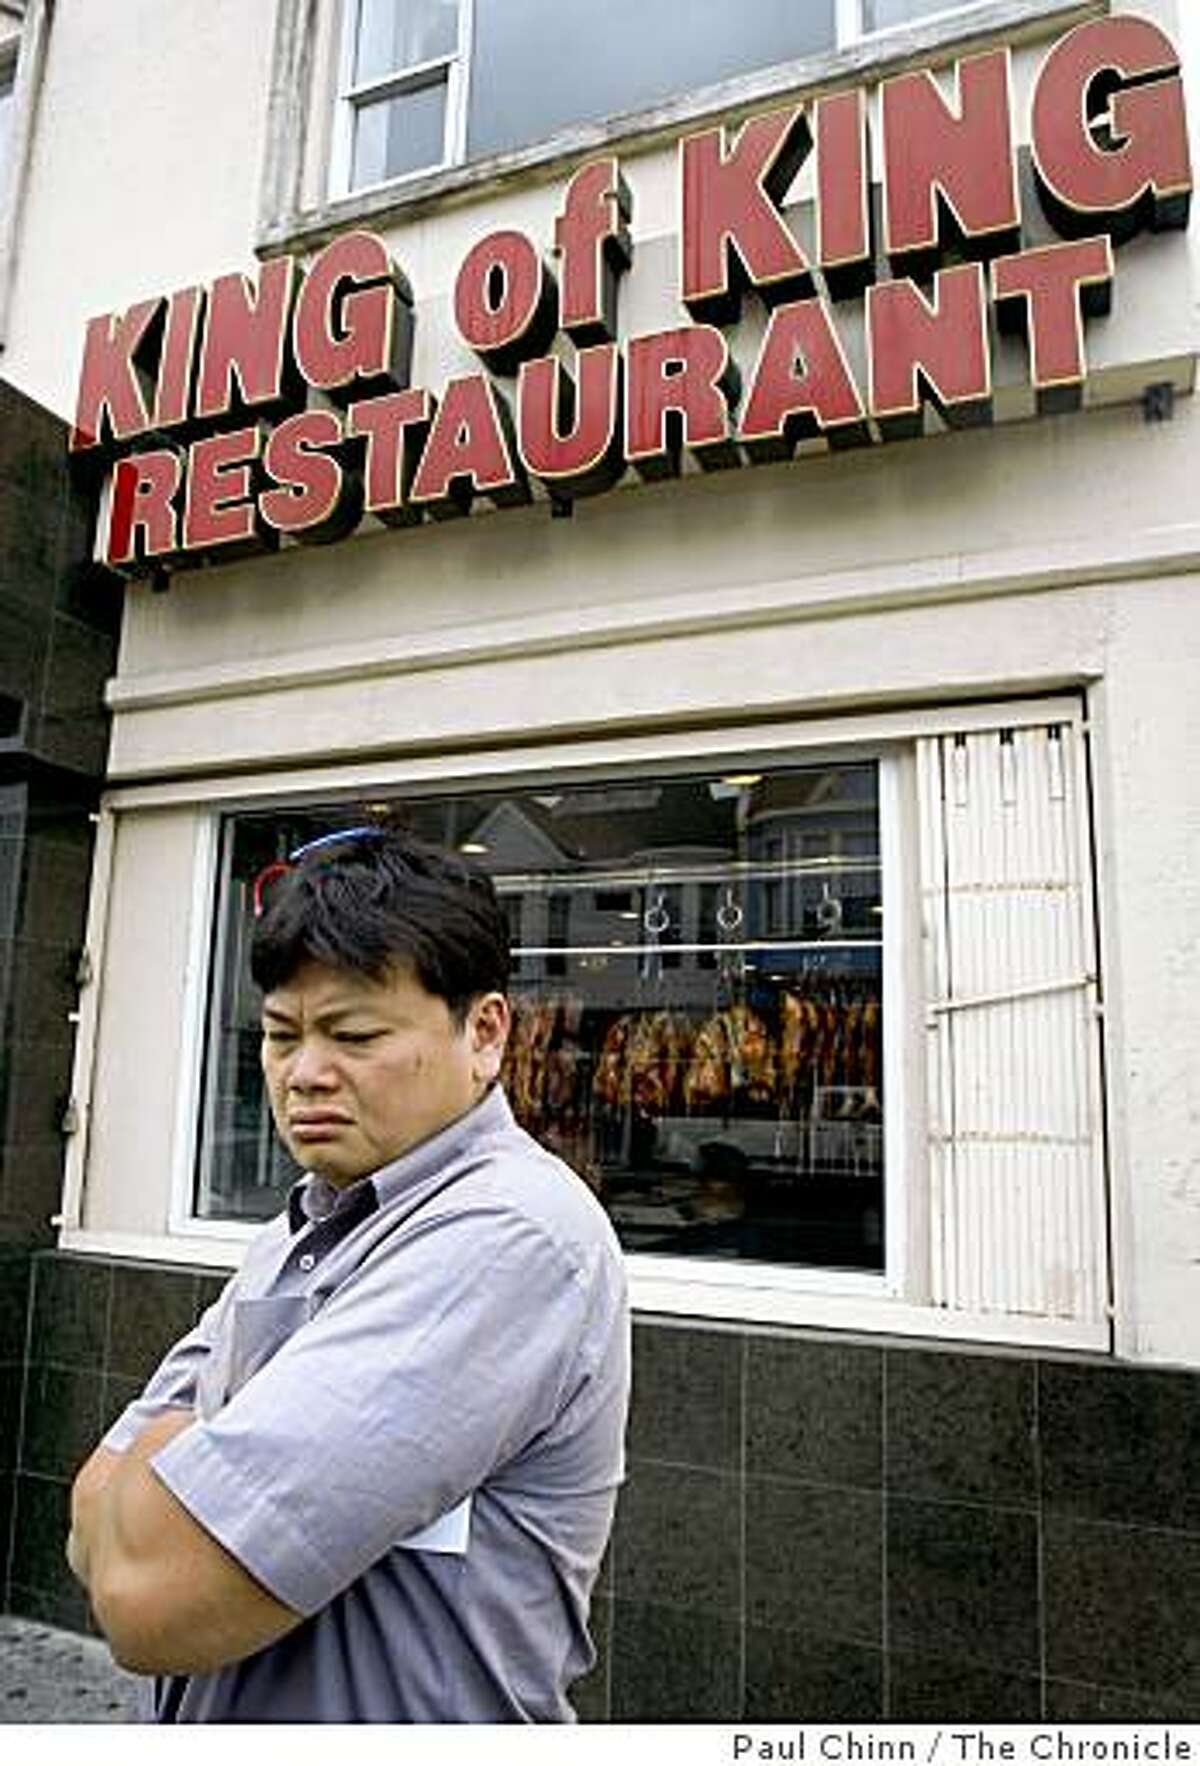 Kevin Quan, an occasional customer of King of King restaurant, says he's altered his dining habits because of the recent restaurant robberies in Oakland, Calif., on Friday, Aug. 8, 2008. King of King is one of the recent victims of the take-over style hold-ups in Oakland.